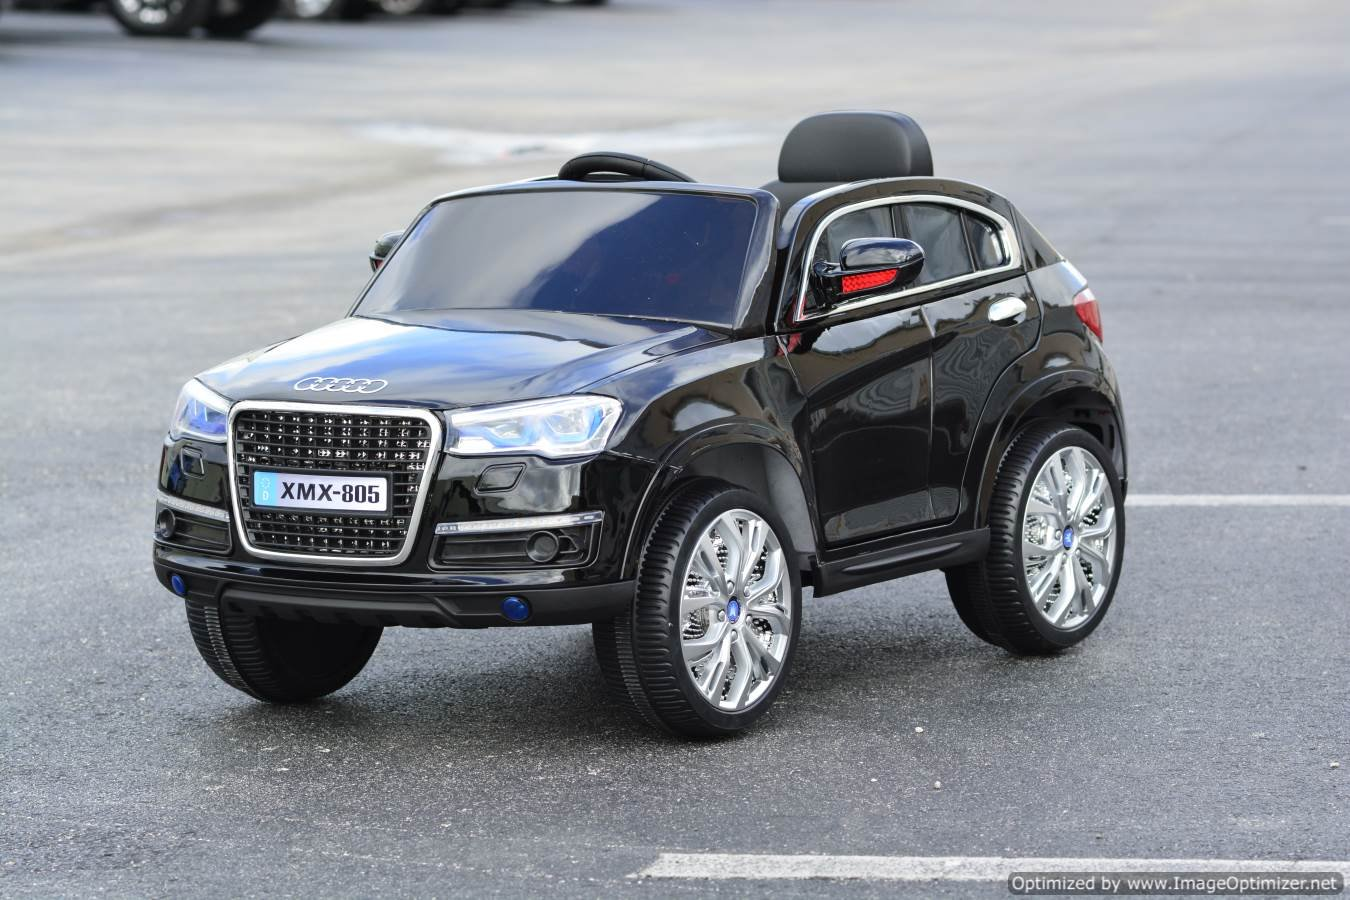 amazoncom new audi q7 style electric ride on car for children with led wheels remote control black toys games